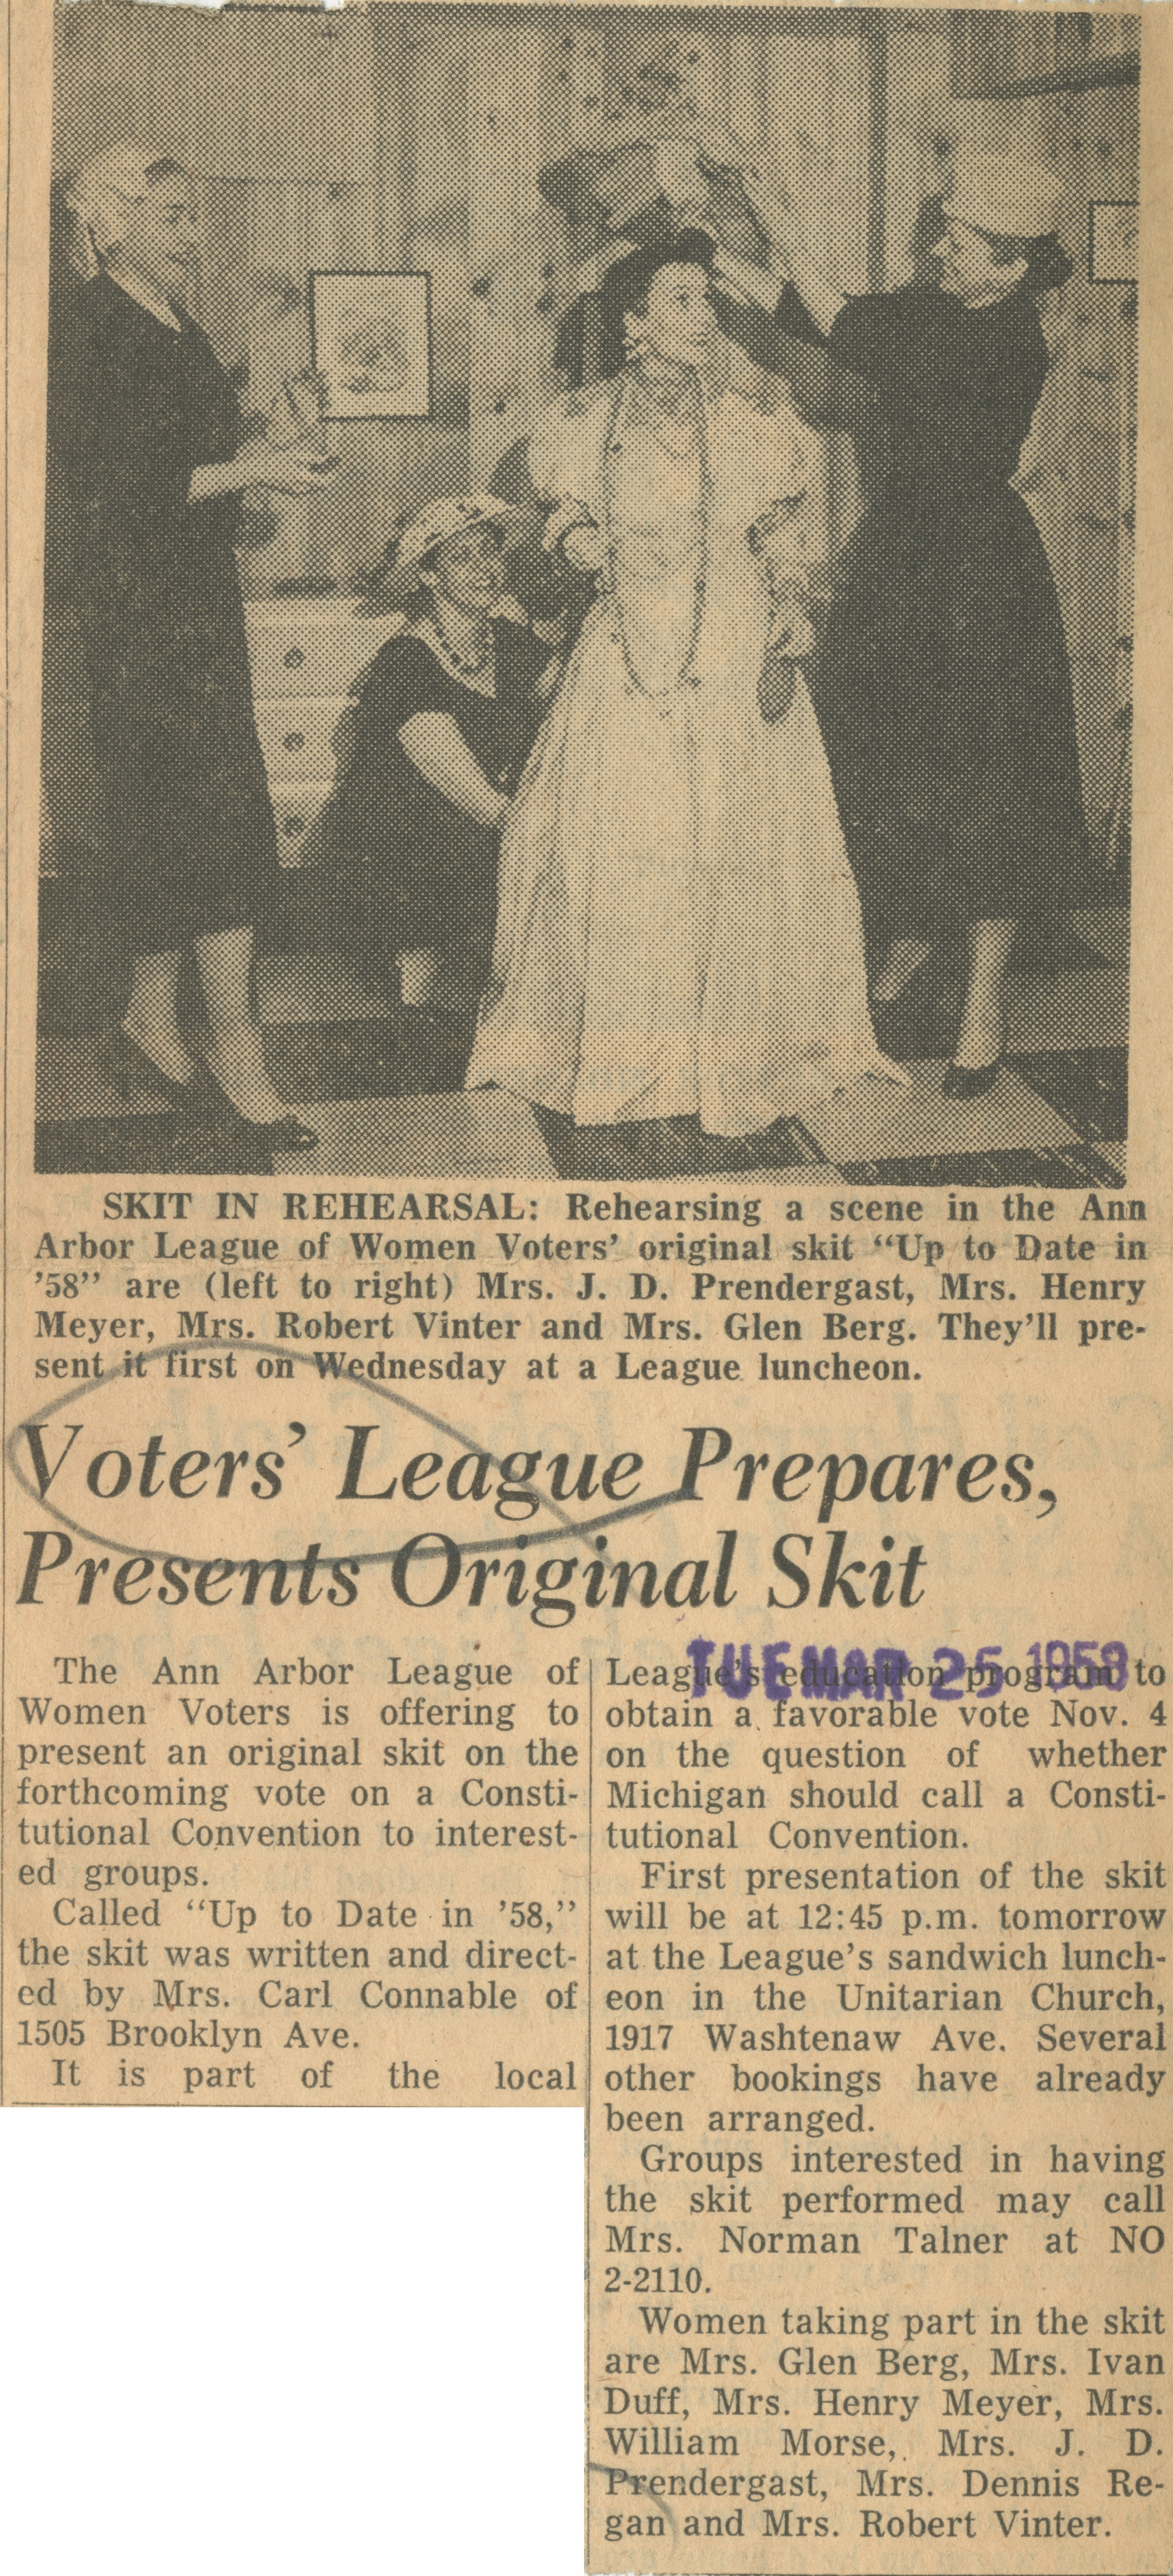 Voters' League Prepares, Presents Original Skit image